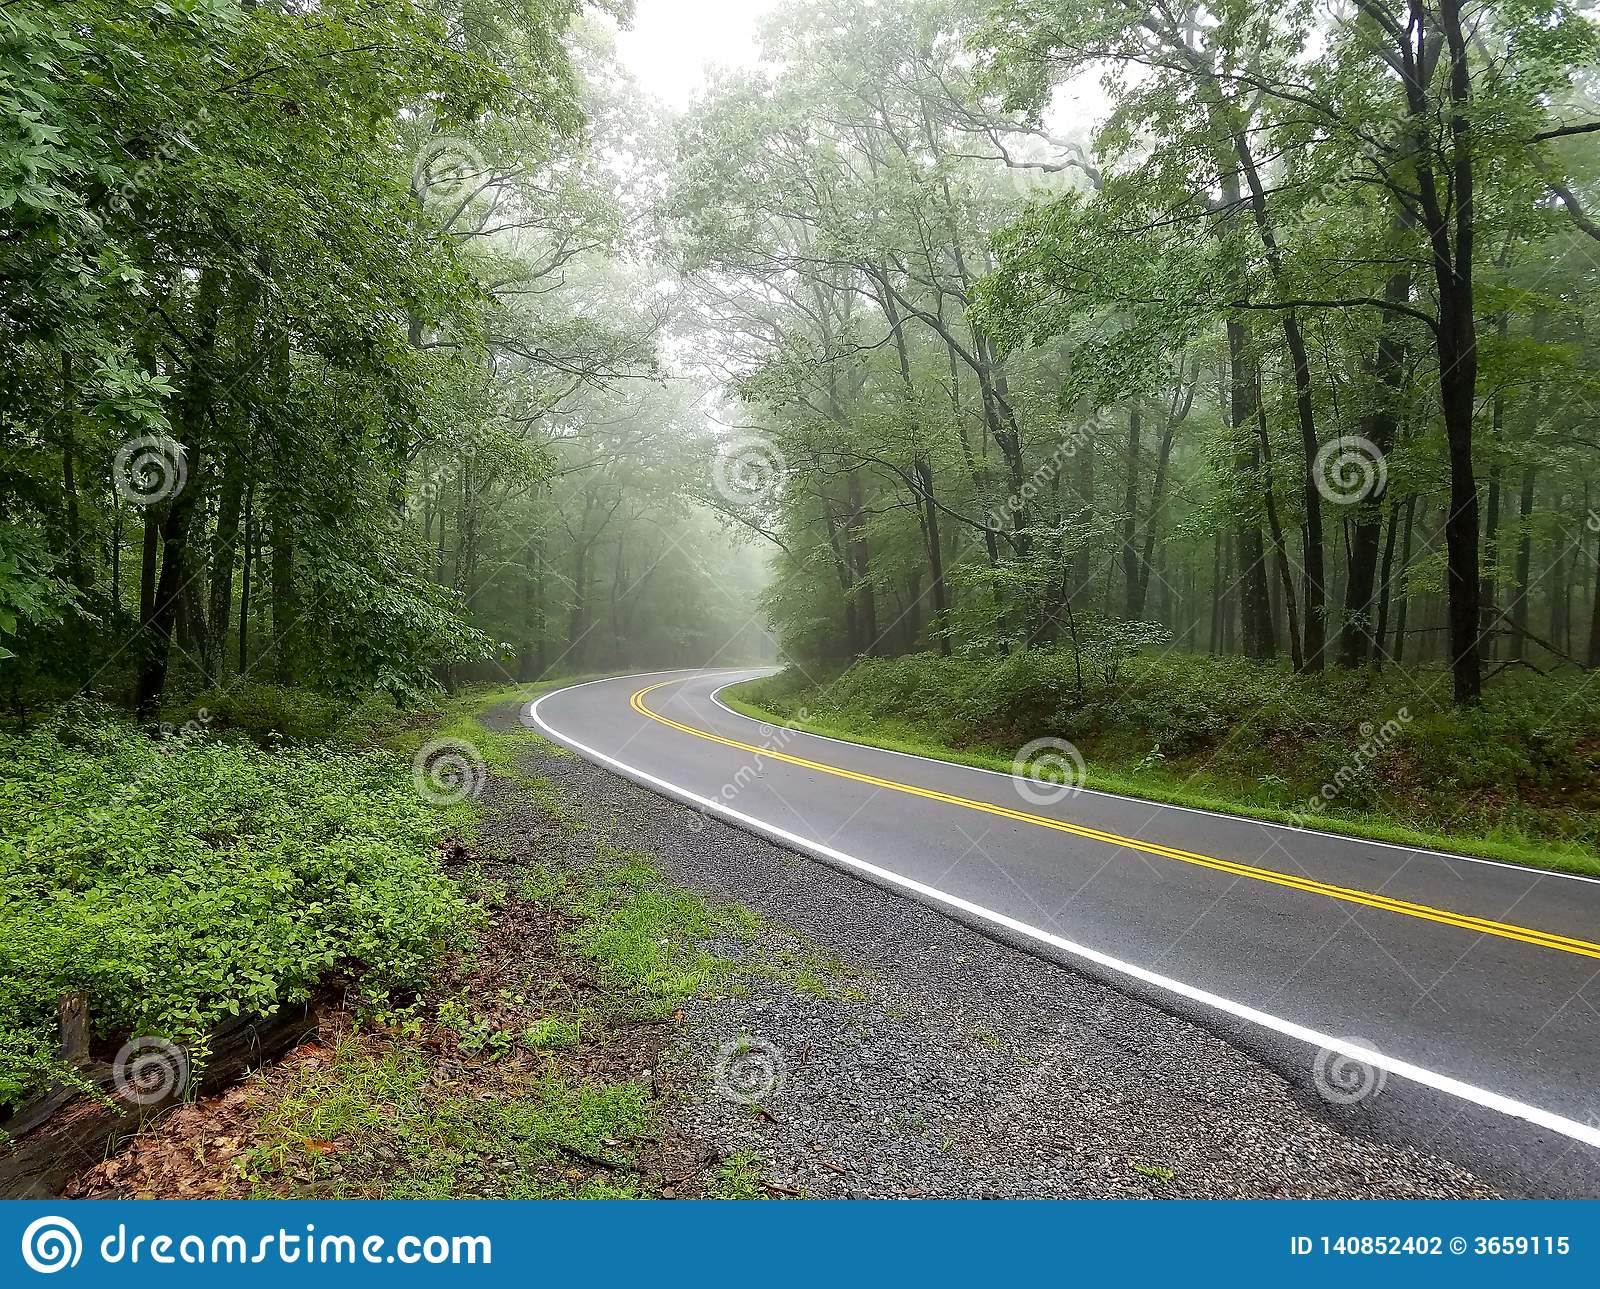 Curved smooth road with bright yellow and white markings on grey asphalt in green summer forest